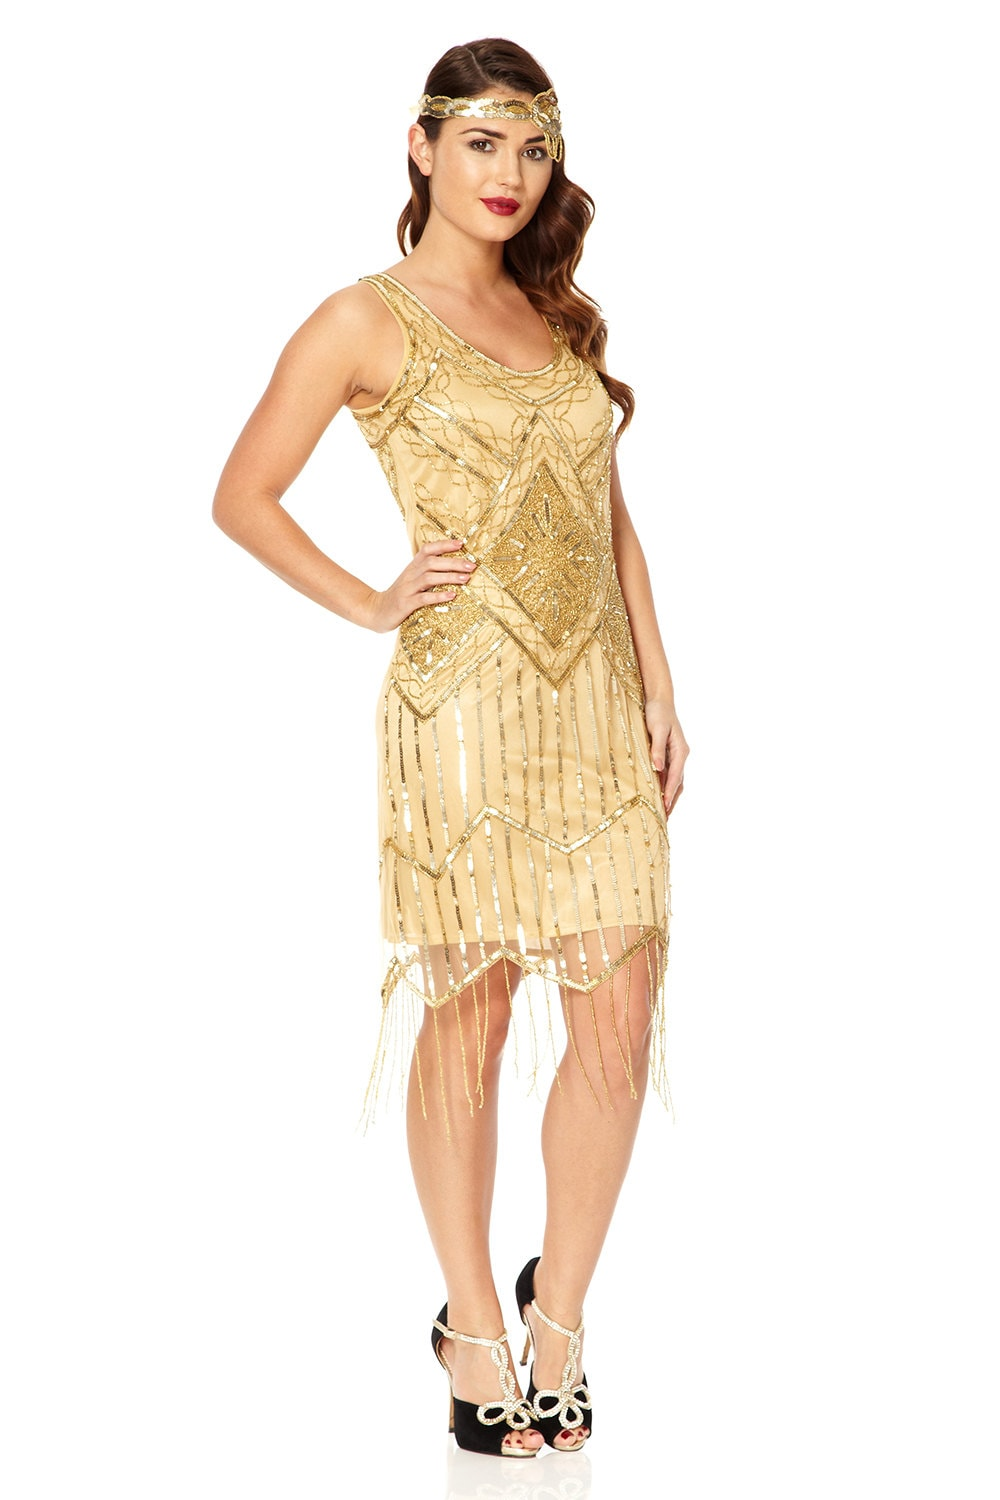 tall uk12 us8 aus12 gold vintage inspired 20s vibe flapper